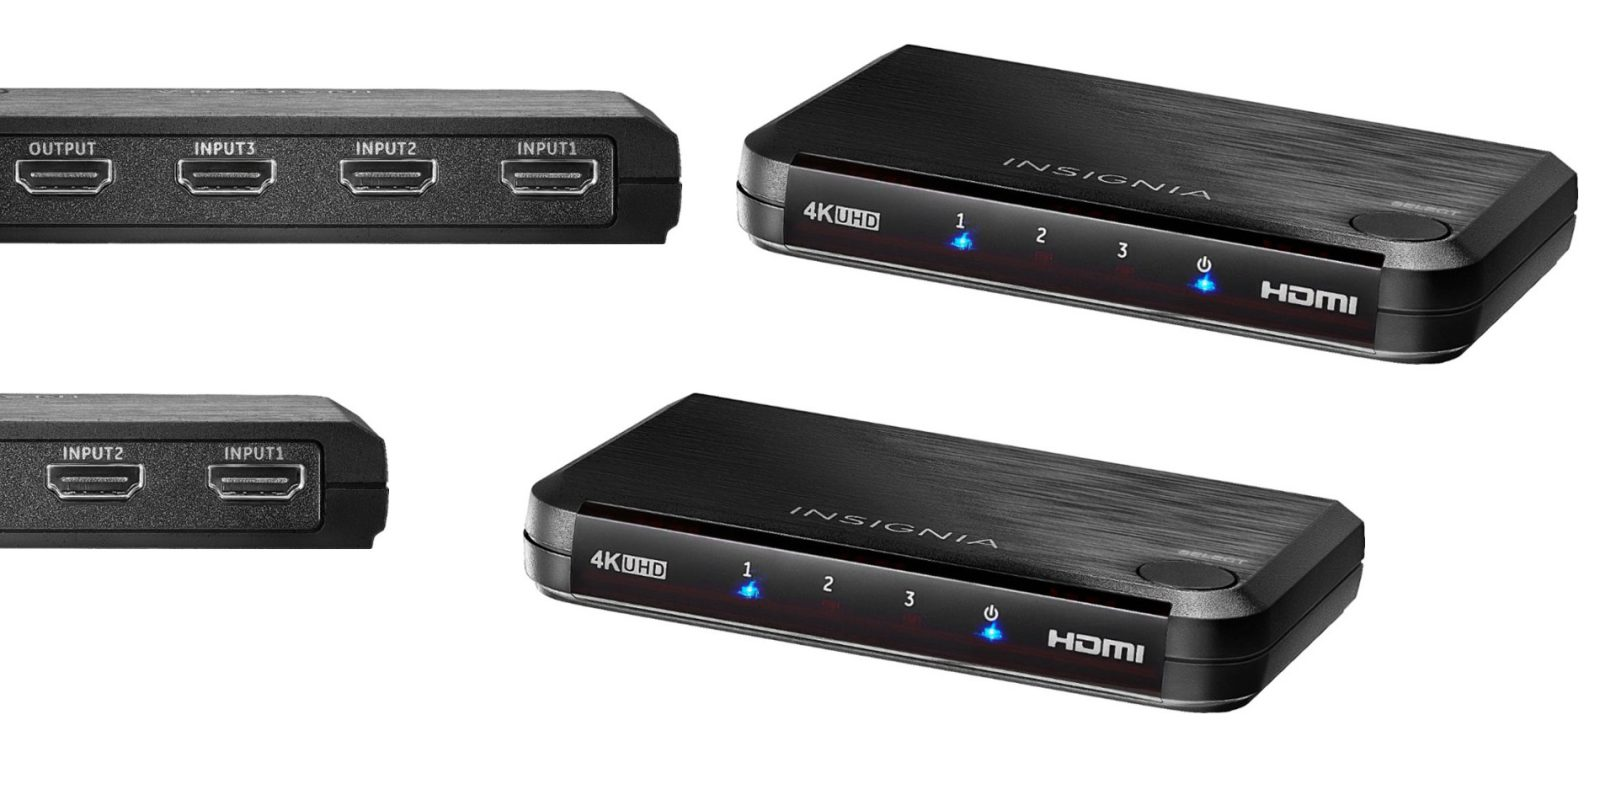 Connect all your home theater gear, this HDMI Switch is now $20 (Reg. $40+)